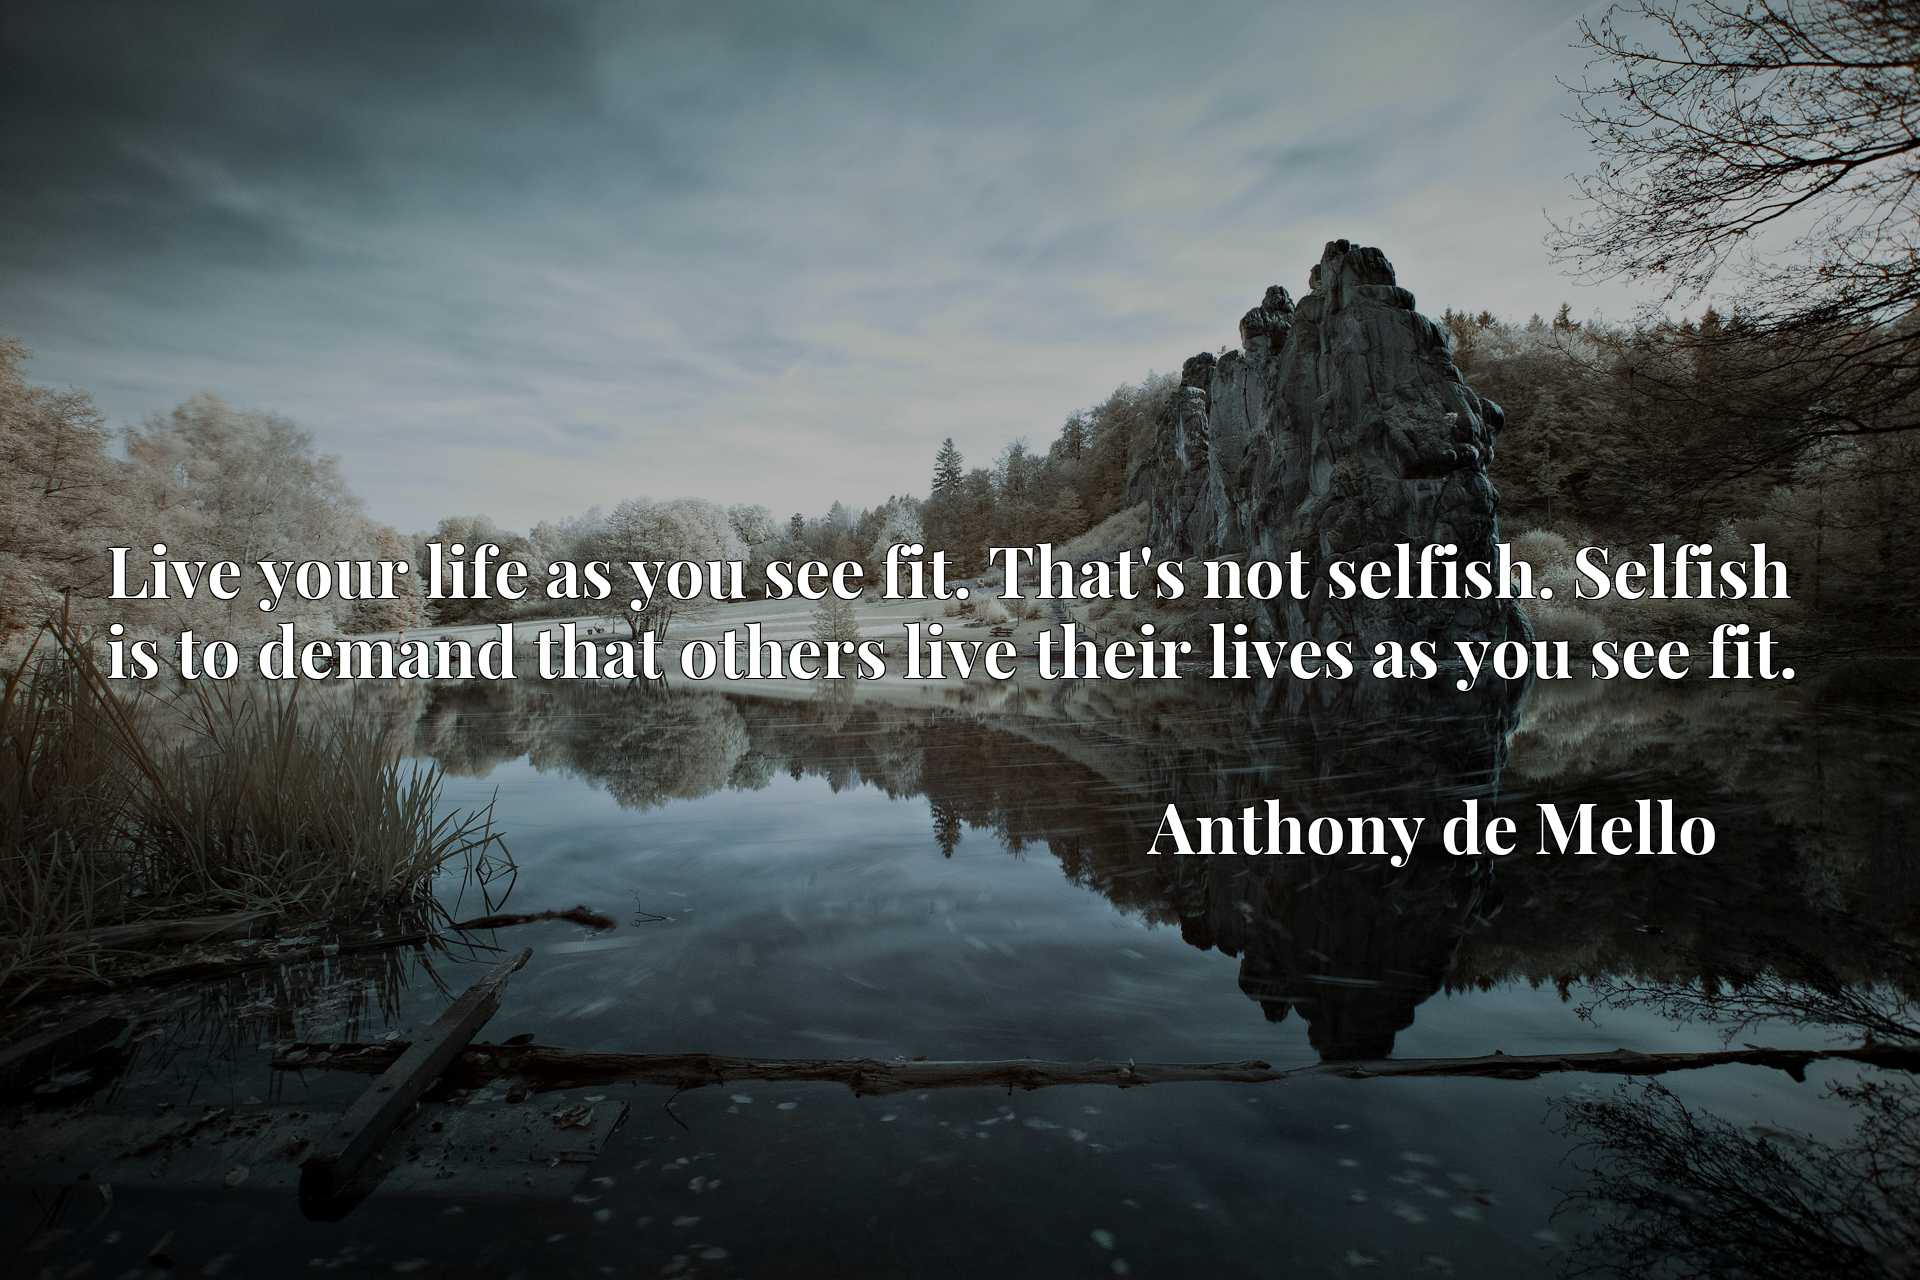 Live your life as you see fit. That's not selfish. Selfish is to demand that others live their lives as you see fit.